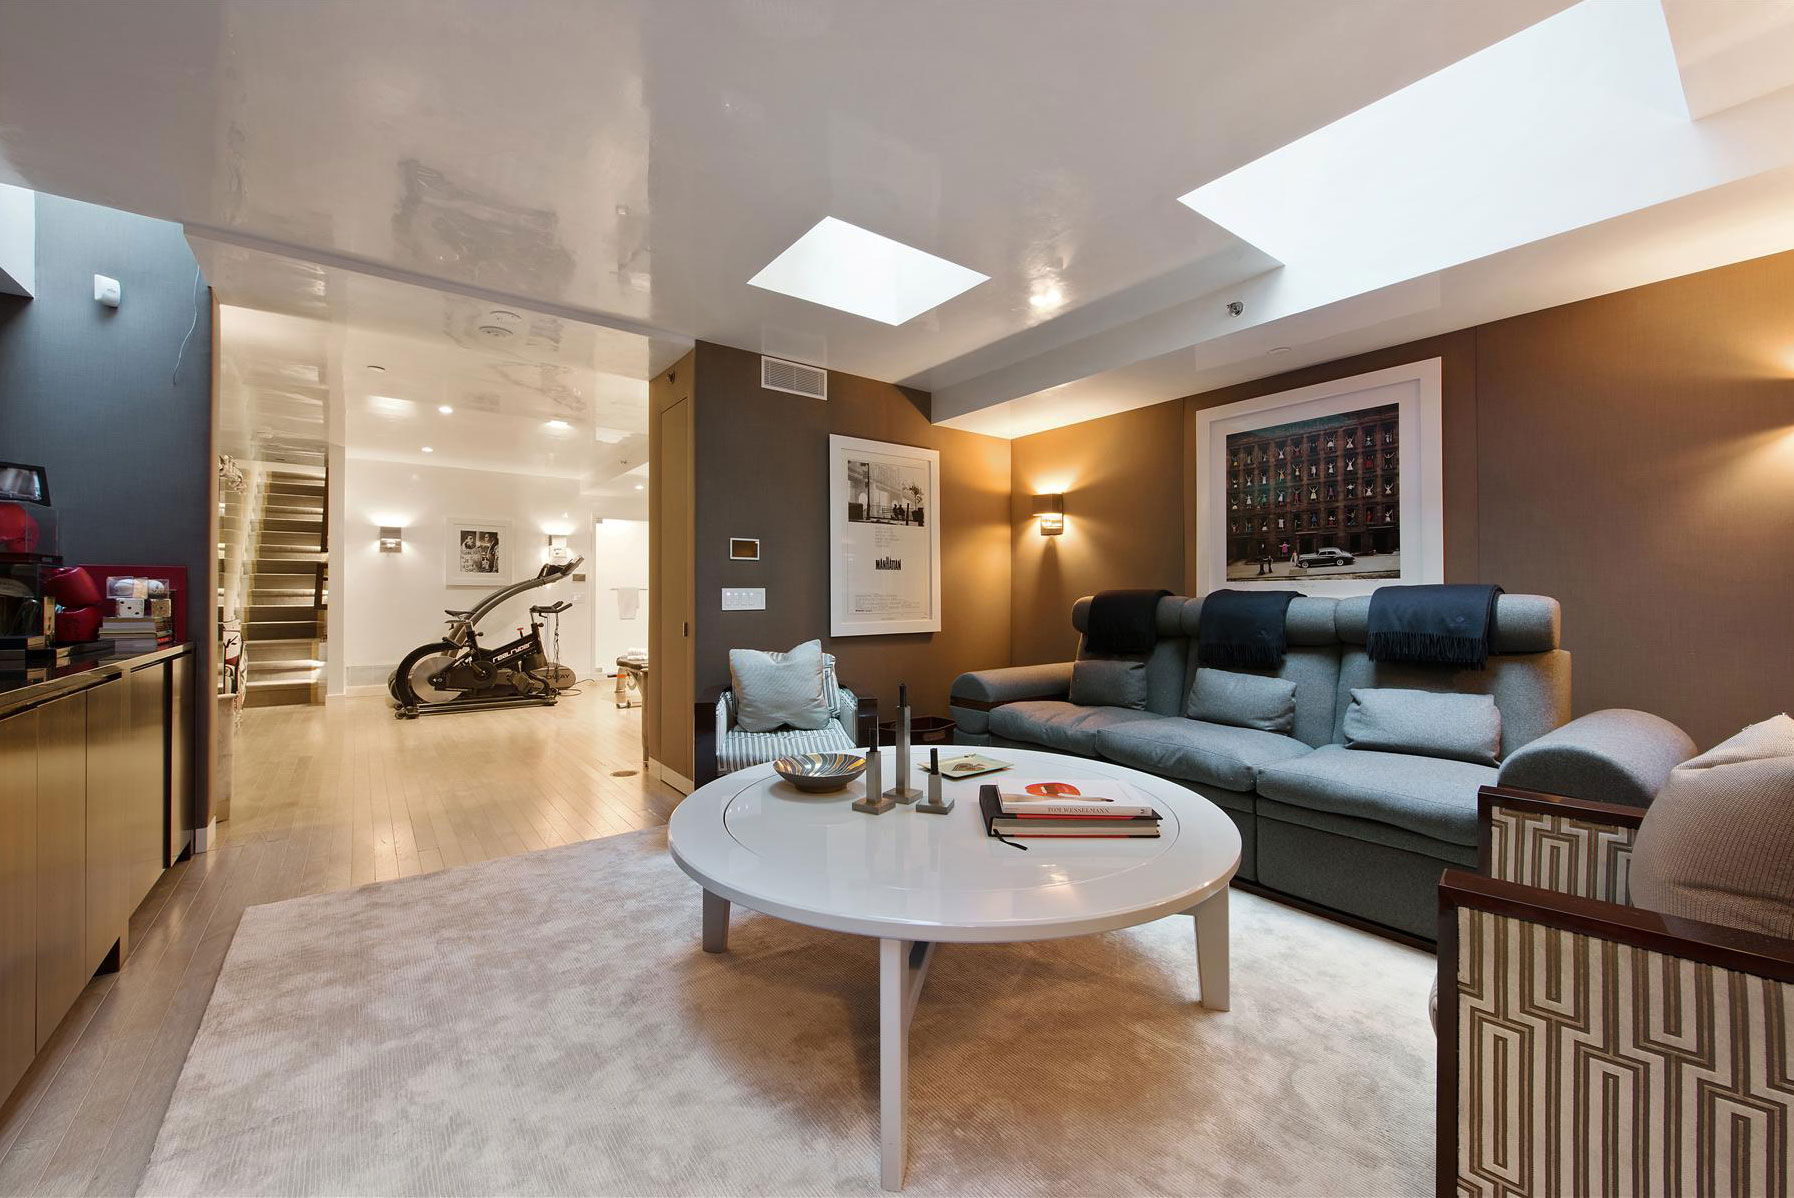 Merveilleux This Stunning Townhome Is Located In New York City, New York.